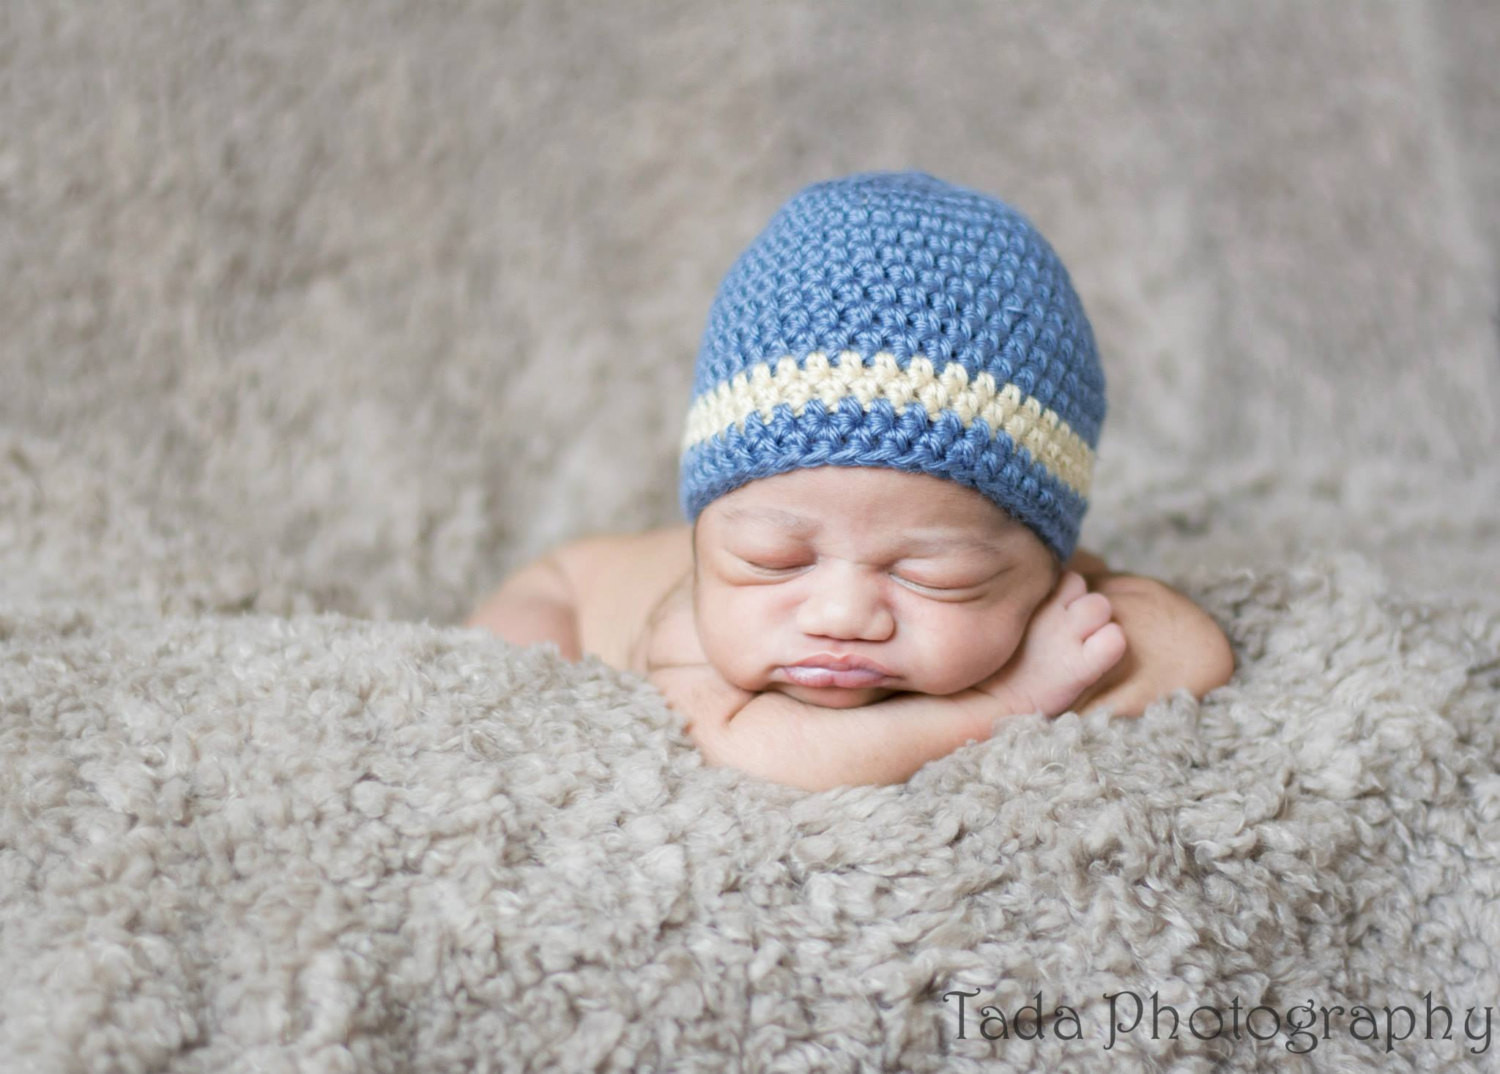 Crochet Newborn Beanie Elegant Baby Beanie Crochet Pattern Easy Beanie Pattern Of Luxury 43 Pictures Crochet Newborn Beanie